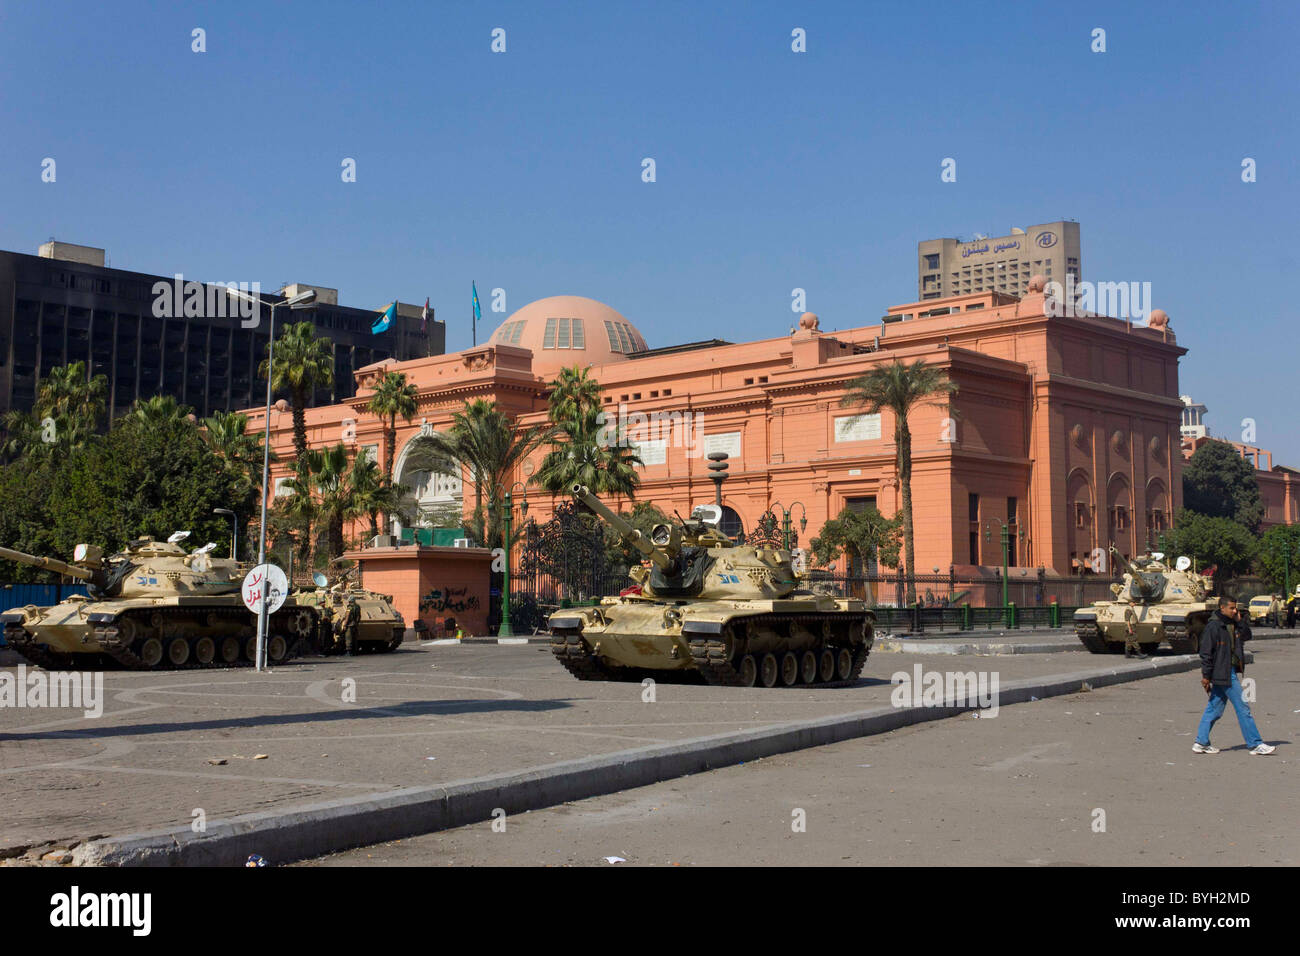 army tanks guarding the Egyptian Museum, Tahrir Square, Cairo, Egypt - Stock Image